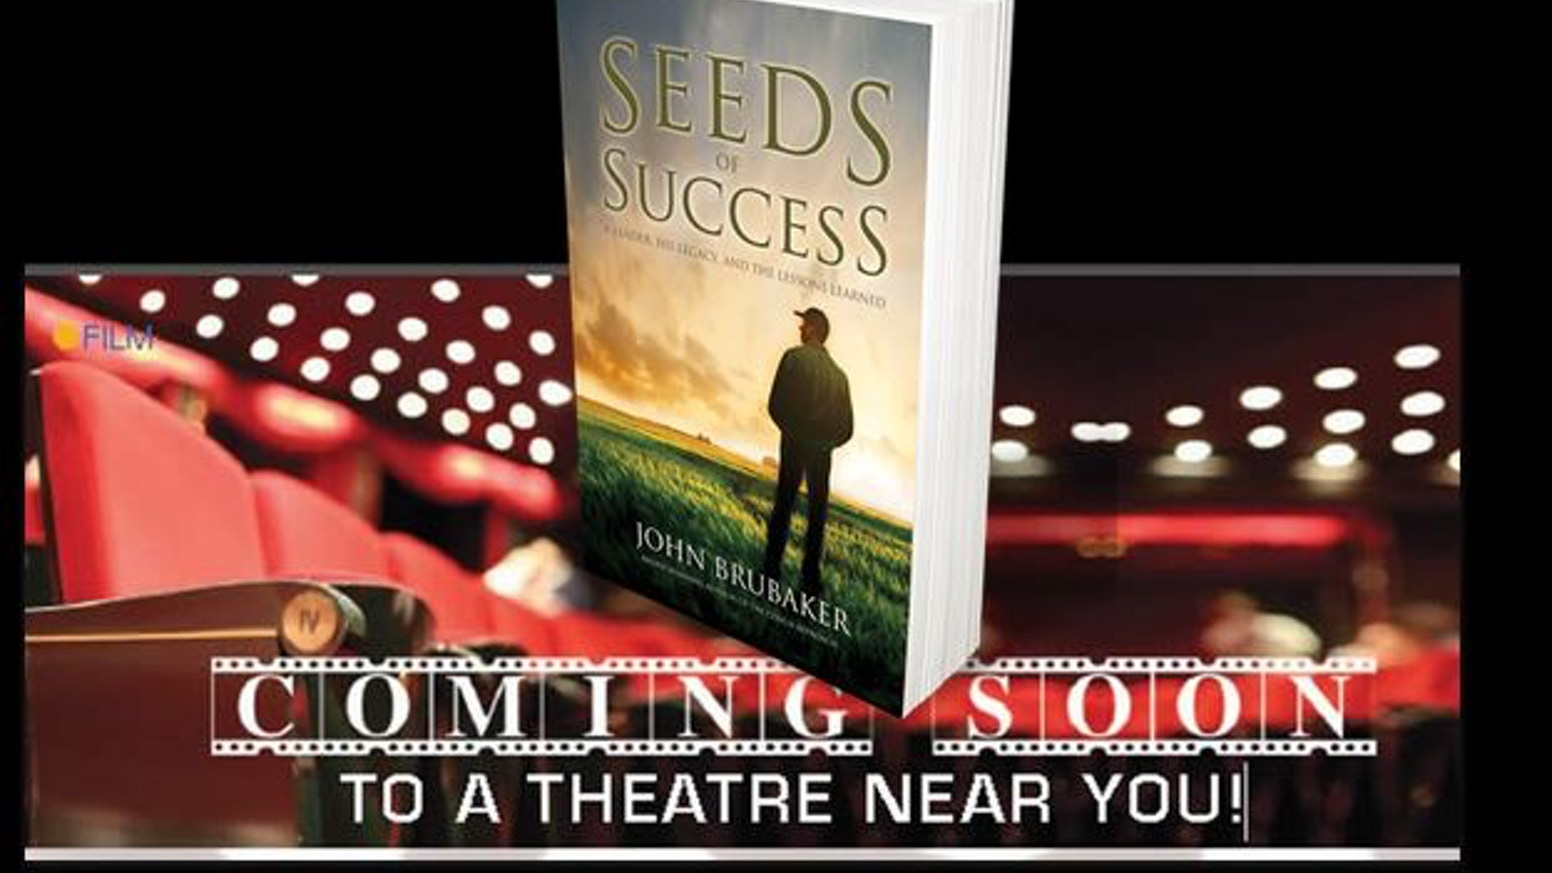 We are raising funds to adapt the award-winning book Seeds of Success to film. Please help bring this vision to reality.